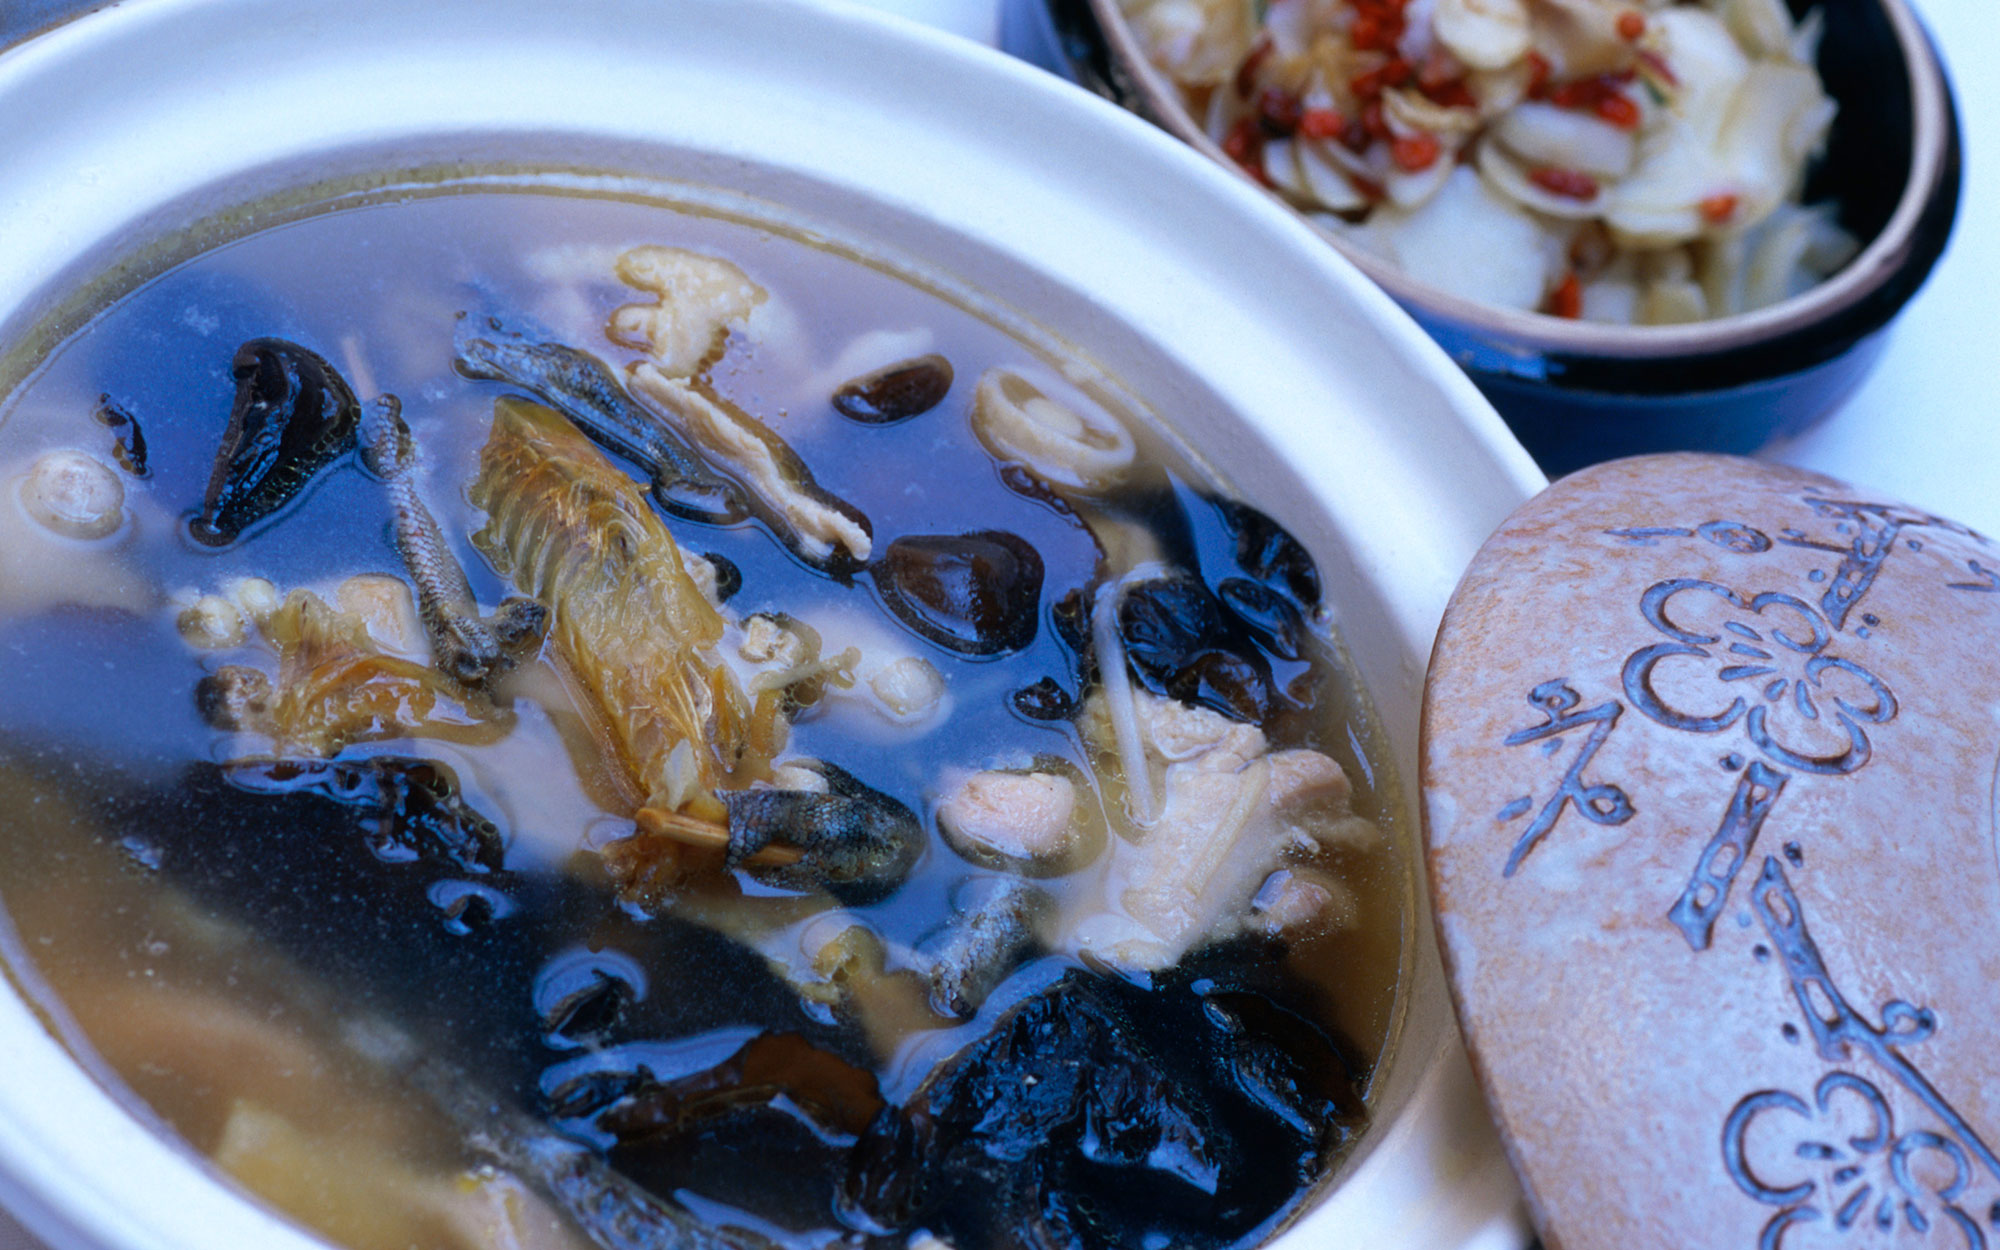 World's Strangest Cold Remedies: Lizard Soup